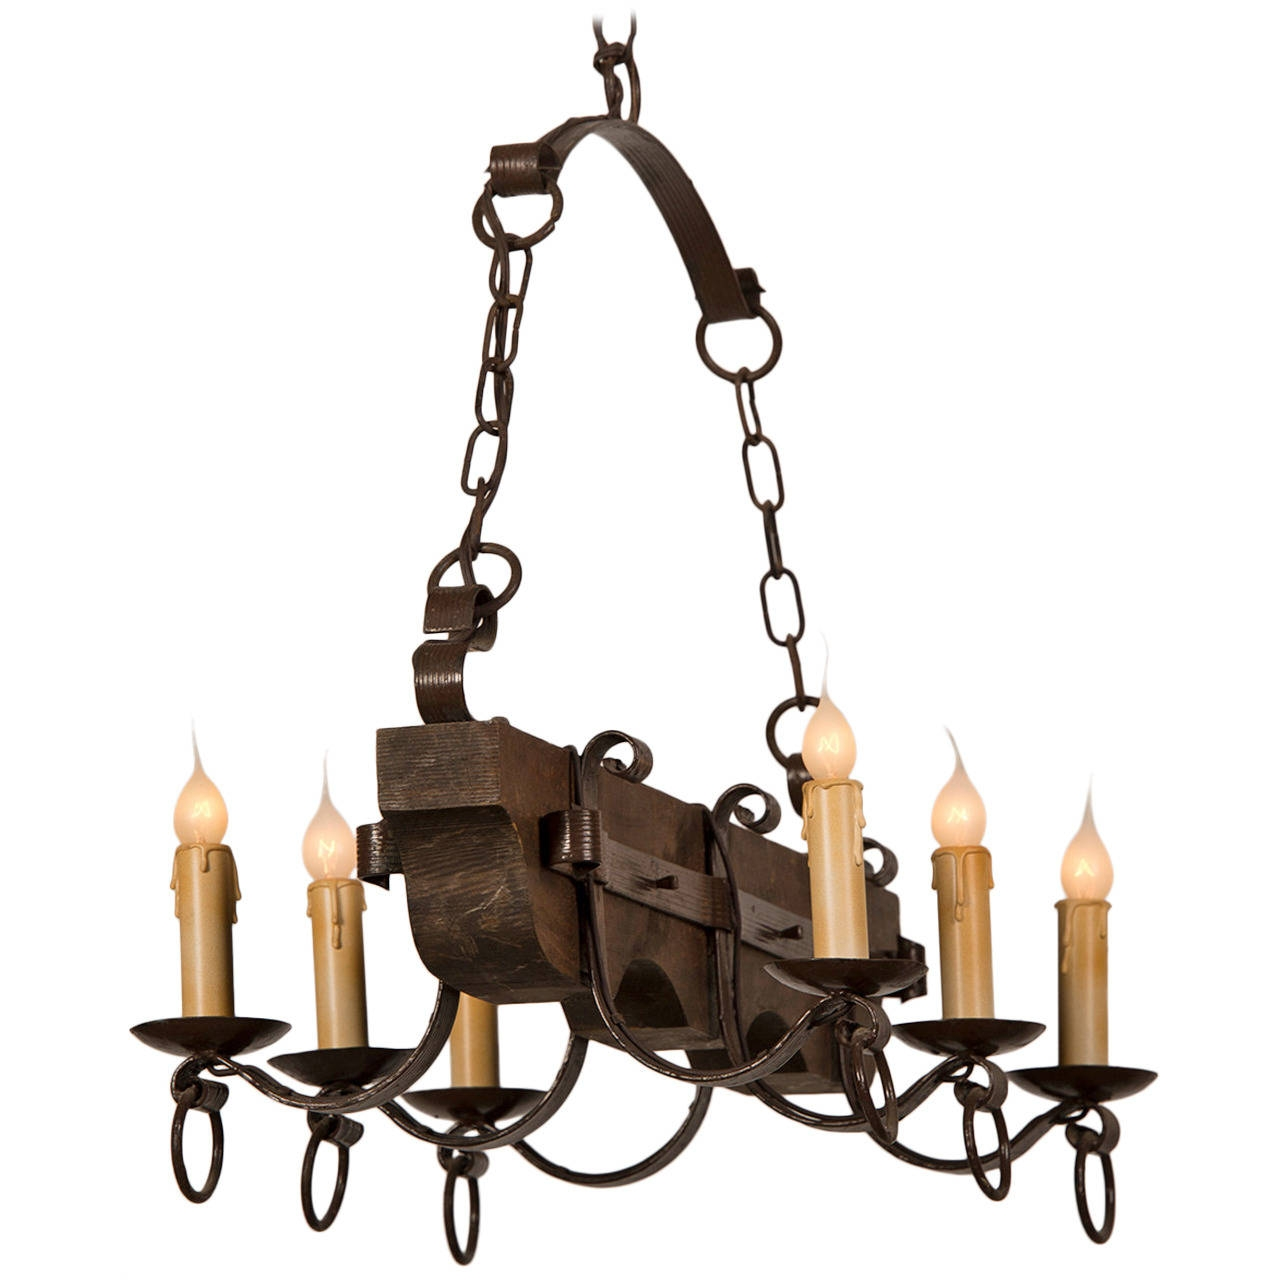 Large Iron Chandeliers | Chandelier Ideas